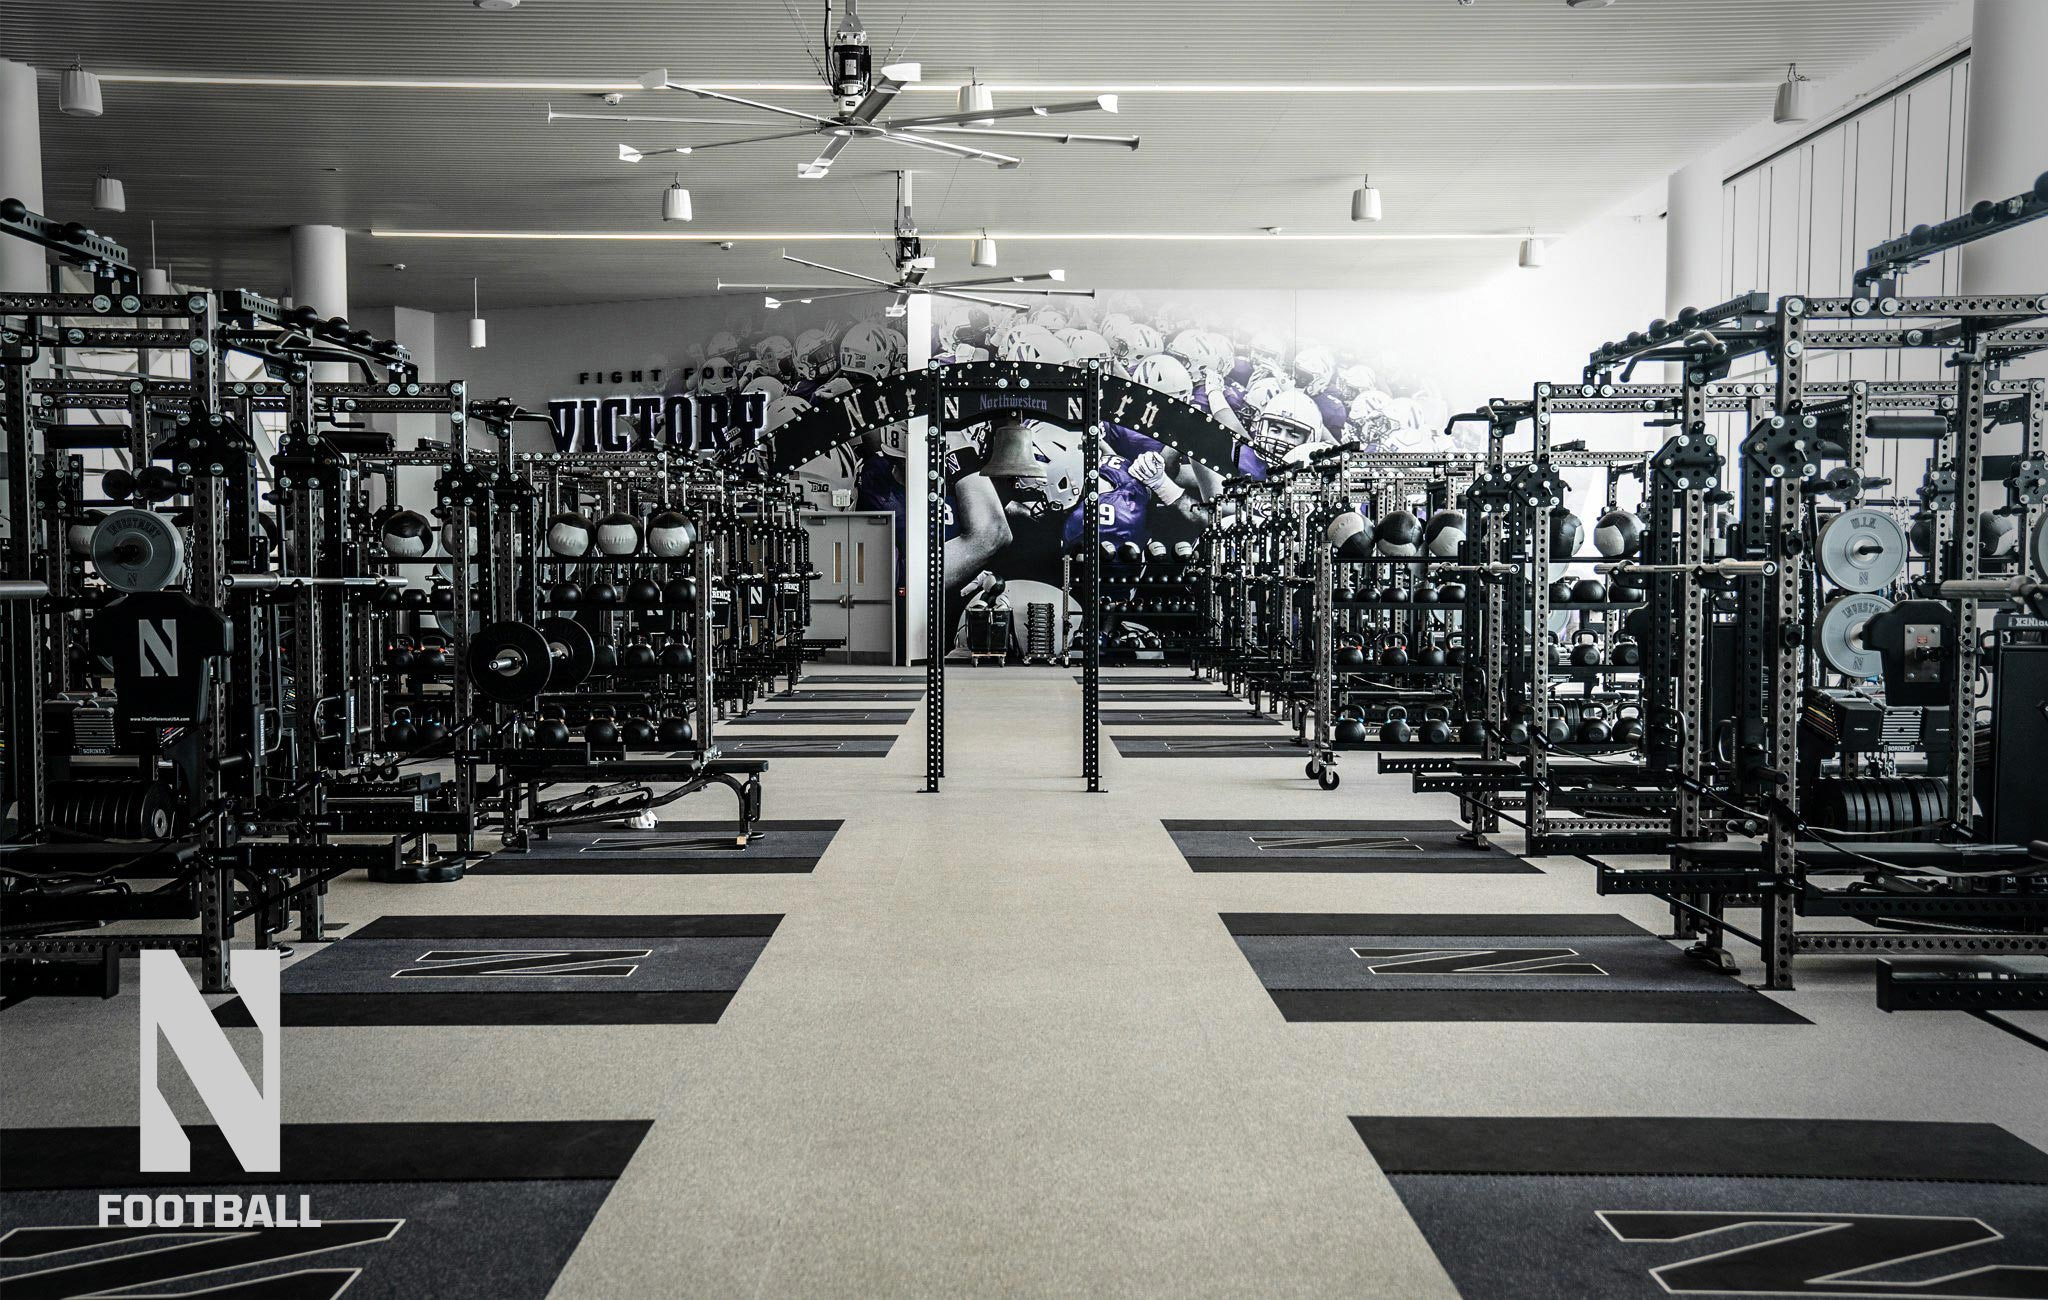 Northwestern University football Sorinex strength and conditioning facility